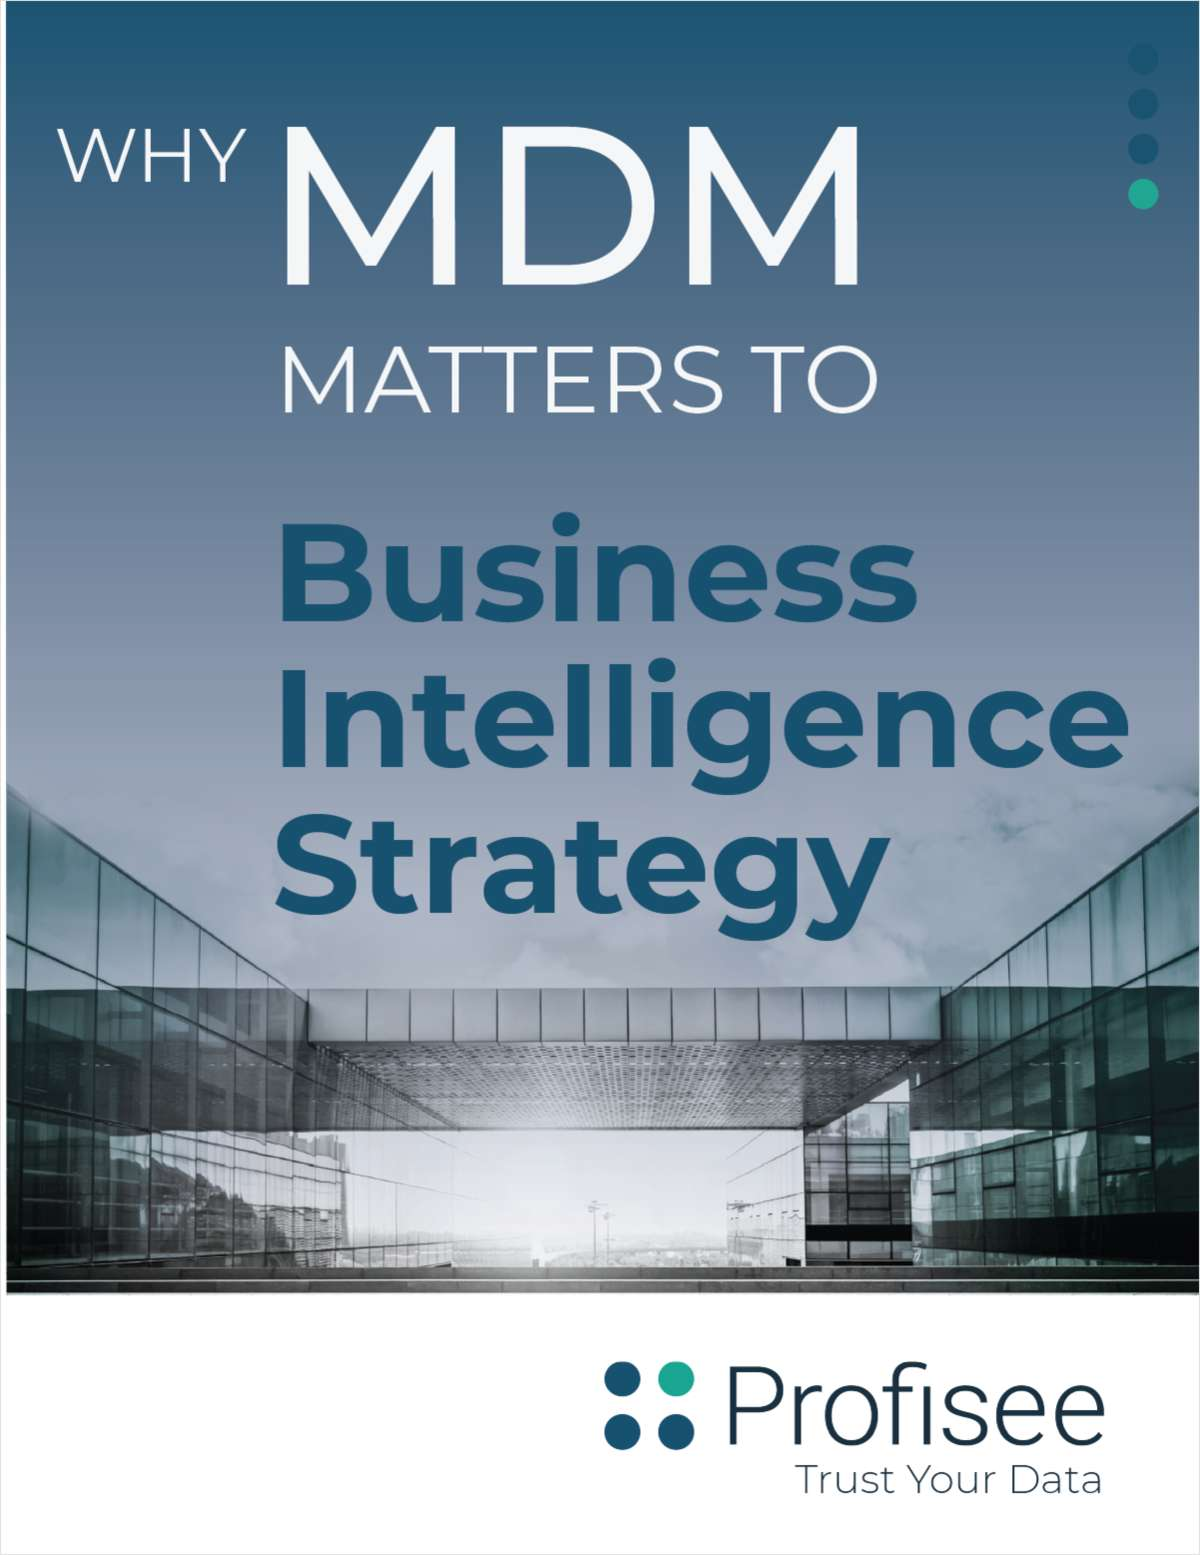 Why Master Data Management (MDM) Matters to Business Intelligence Strategy